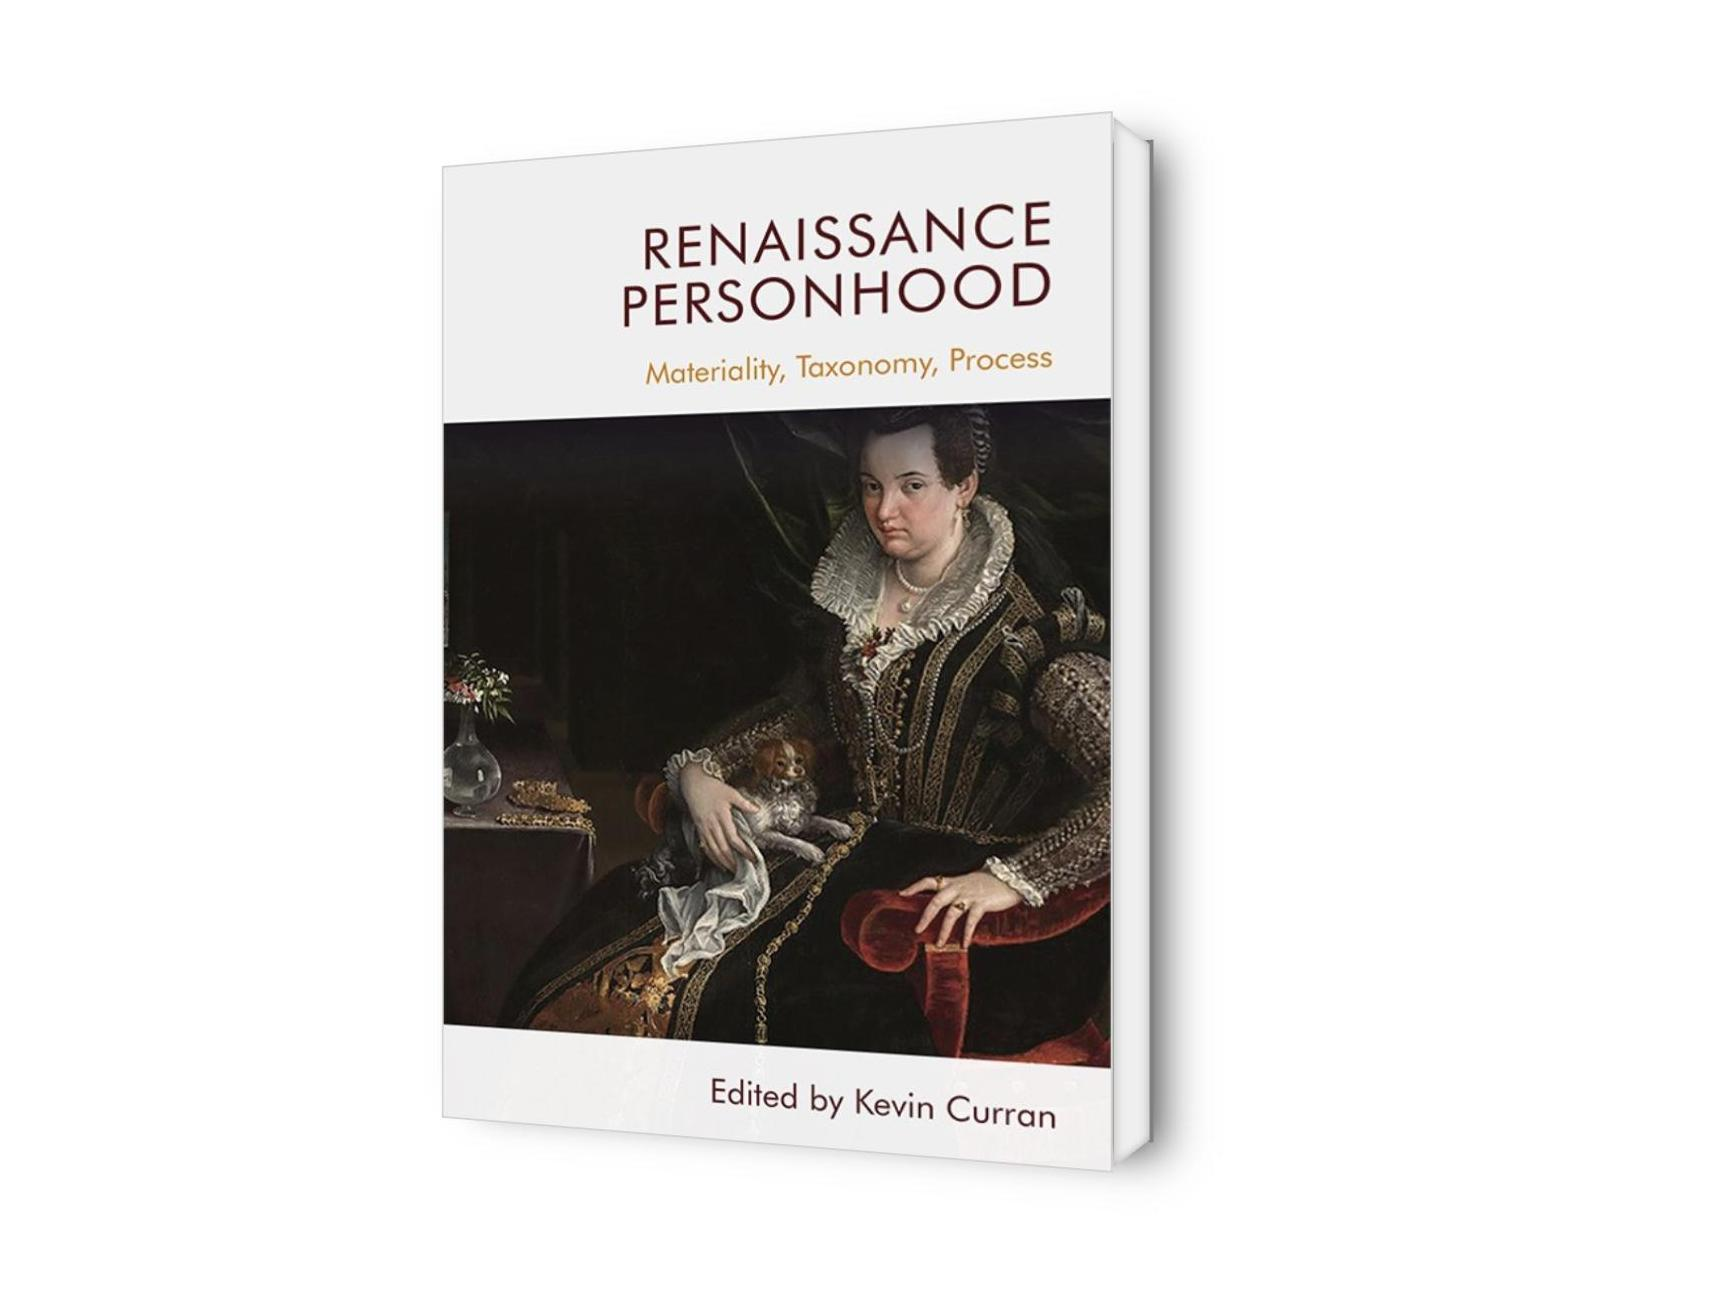 Renaissance Personhood. Materiality, Taxonomy, Process